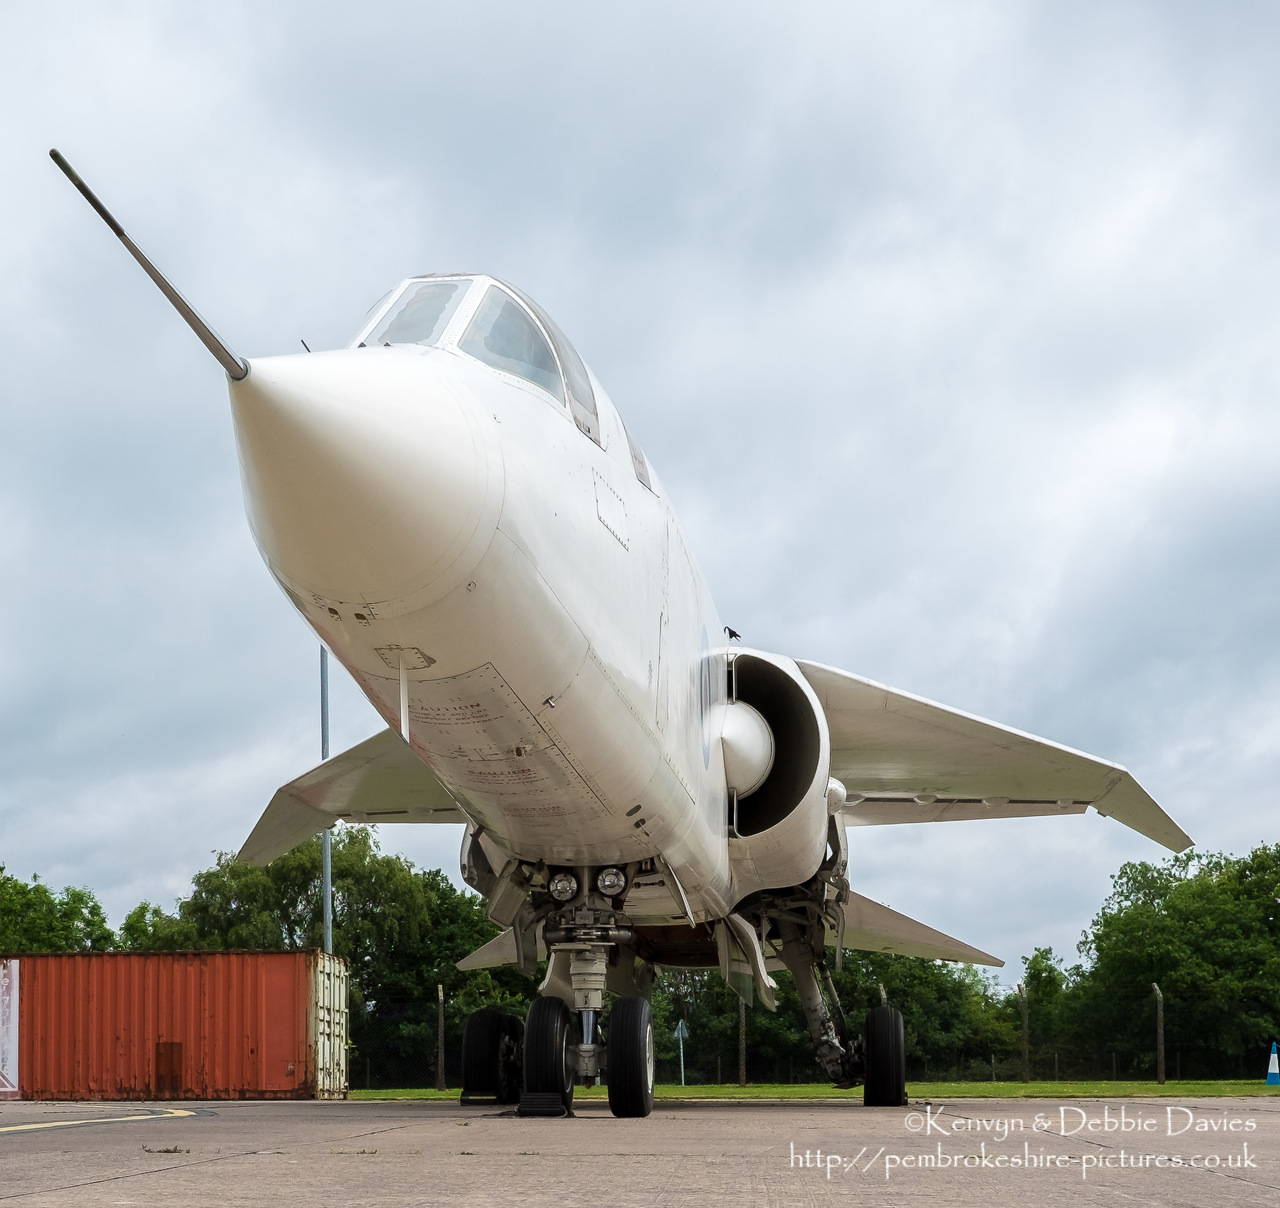 Designed in the early 60s, the first flight of the TSR 2 (Tactical Strike and Reconnaissance Mach 2) occurred in 1964. This is the second TSR 2 built (the first and only one that flew no longer exists).